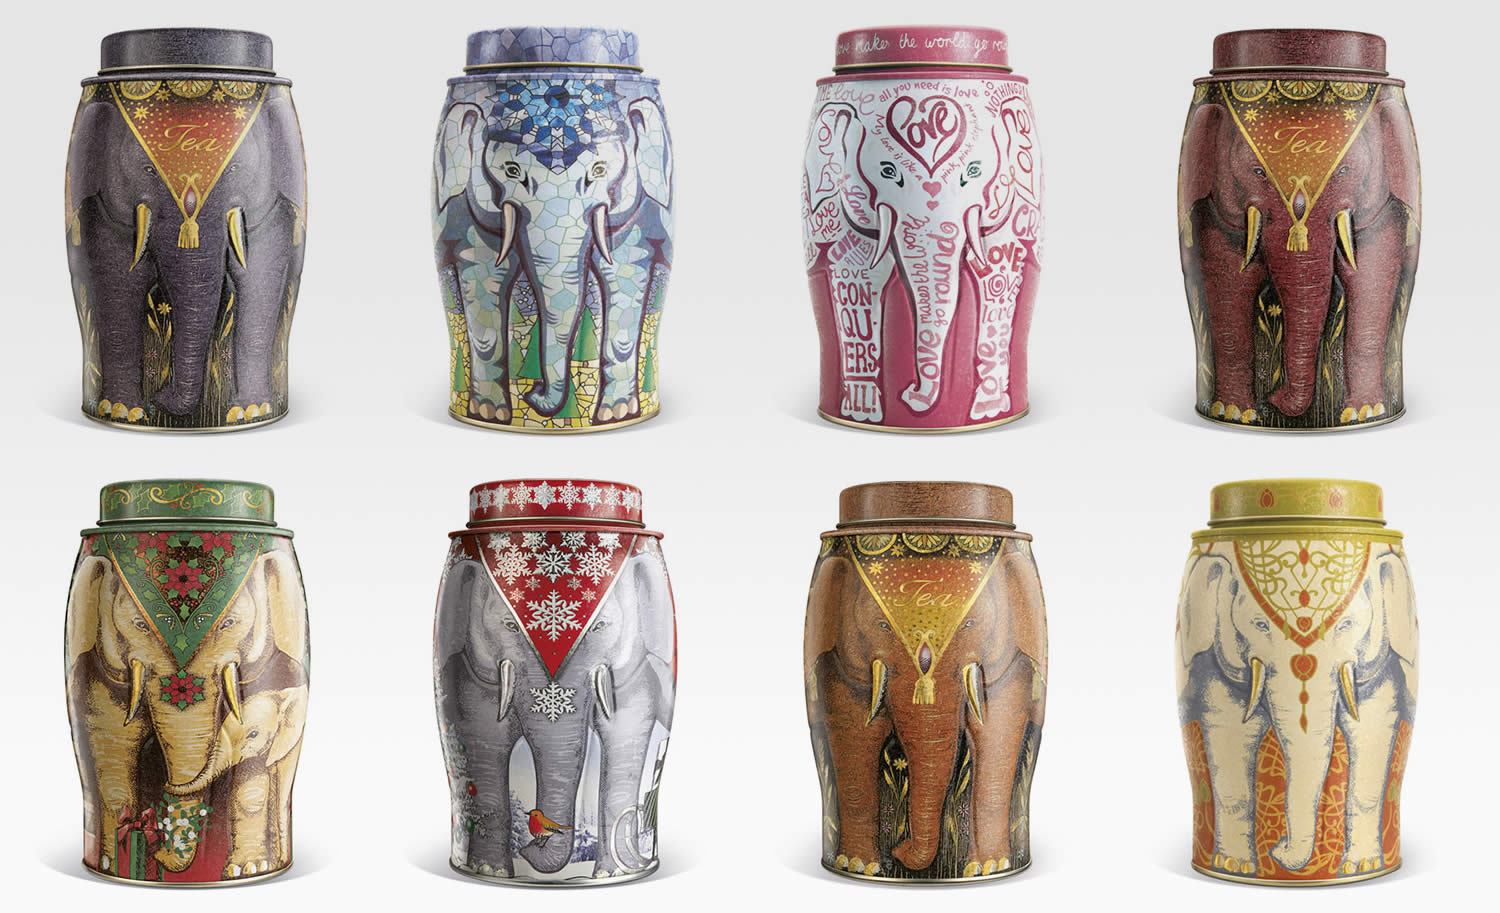 elephant on tea cans, Williamson Tea Elephant Caddies Packaging by Springetts Brand Design Consultants